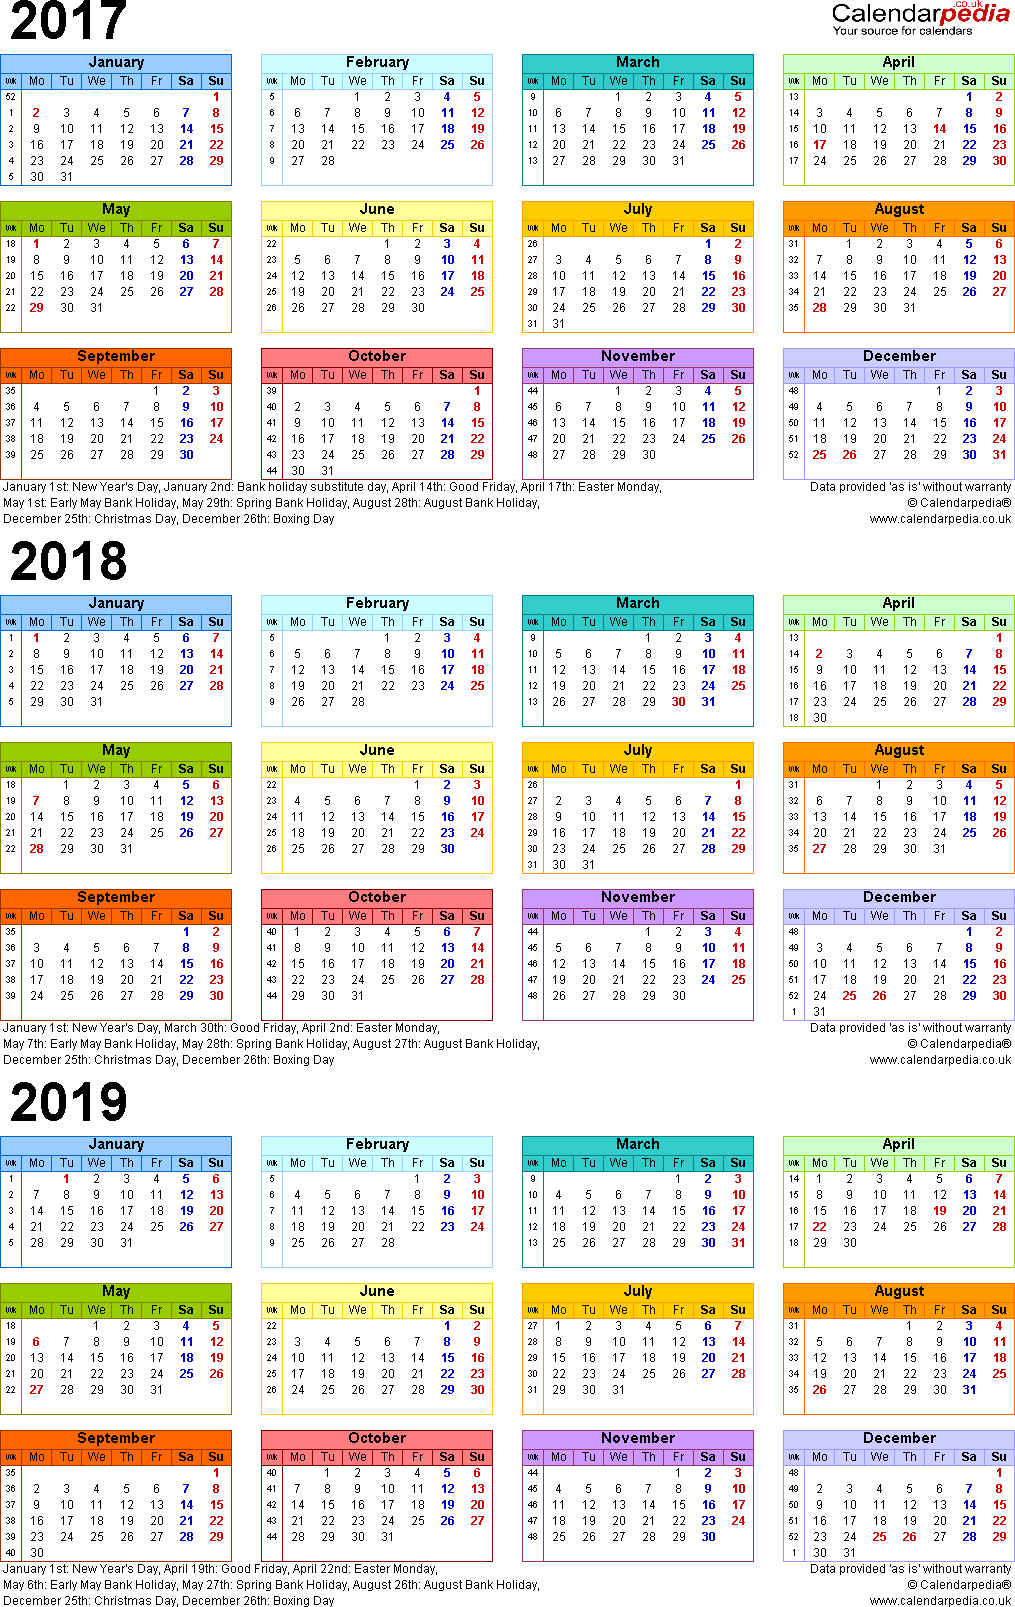 Download Template 3: Word template for three year calendar 2017-2019 in colour (portrait orientation, 1 page, A4)